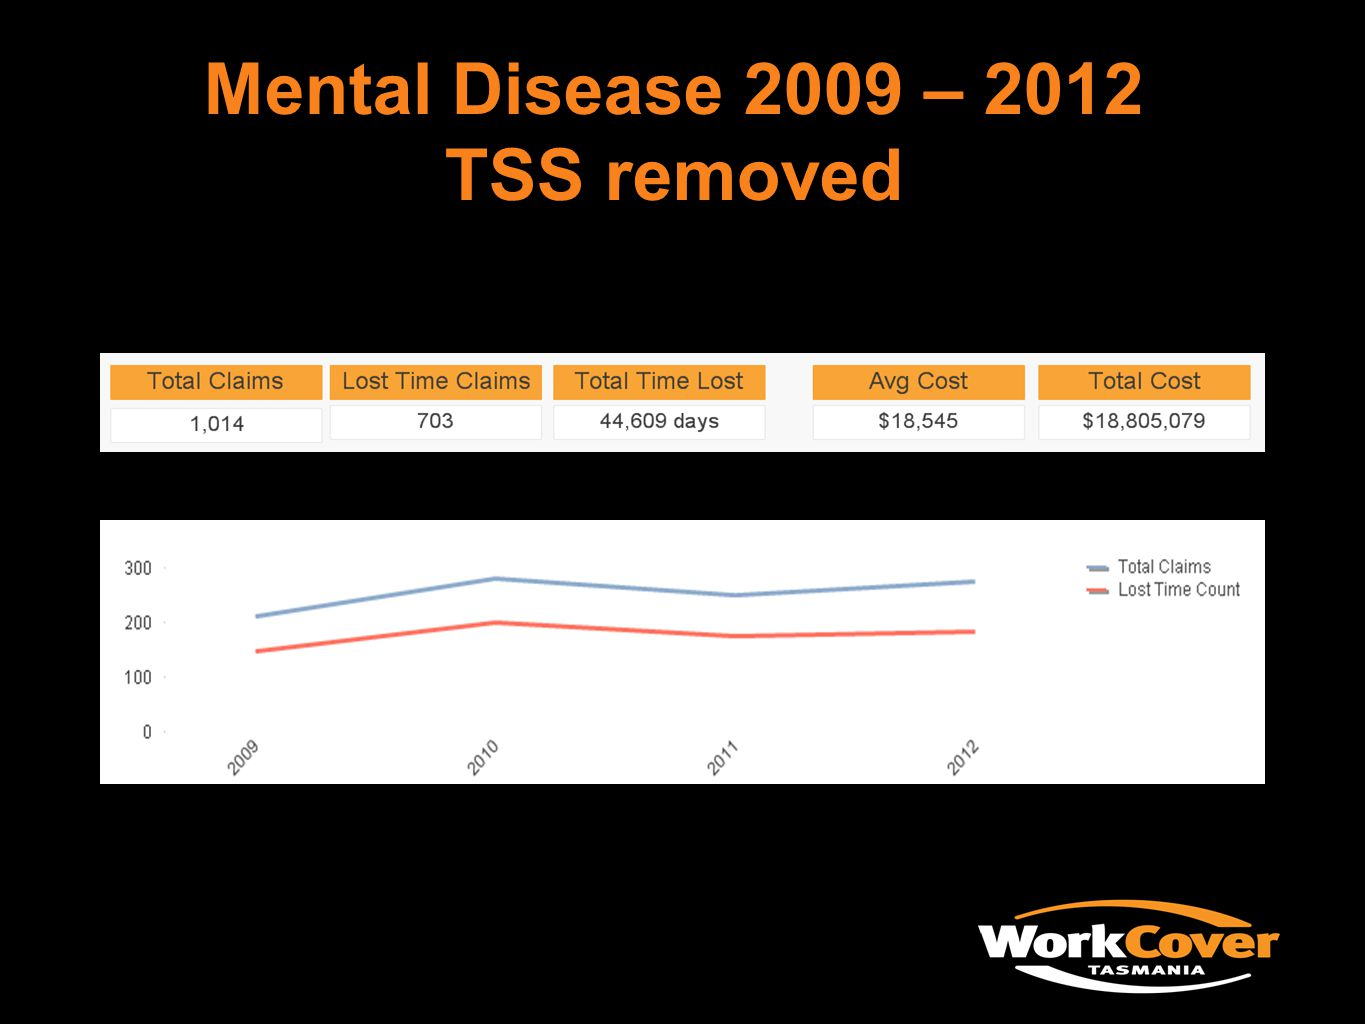 Mental Disease 2009 – 2012 TSS removed